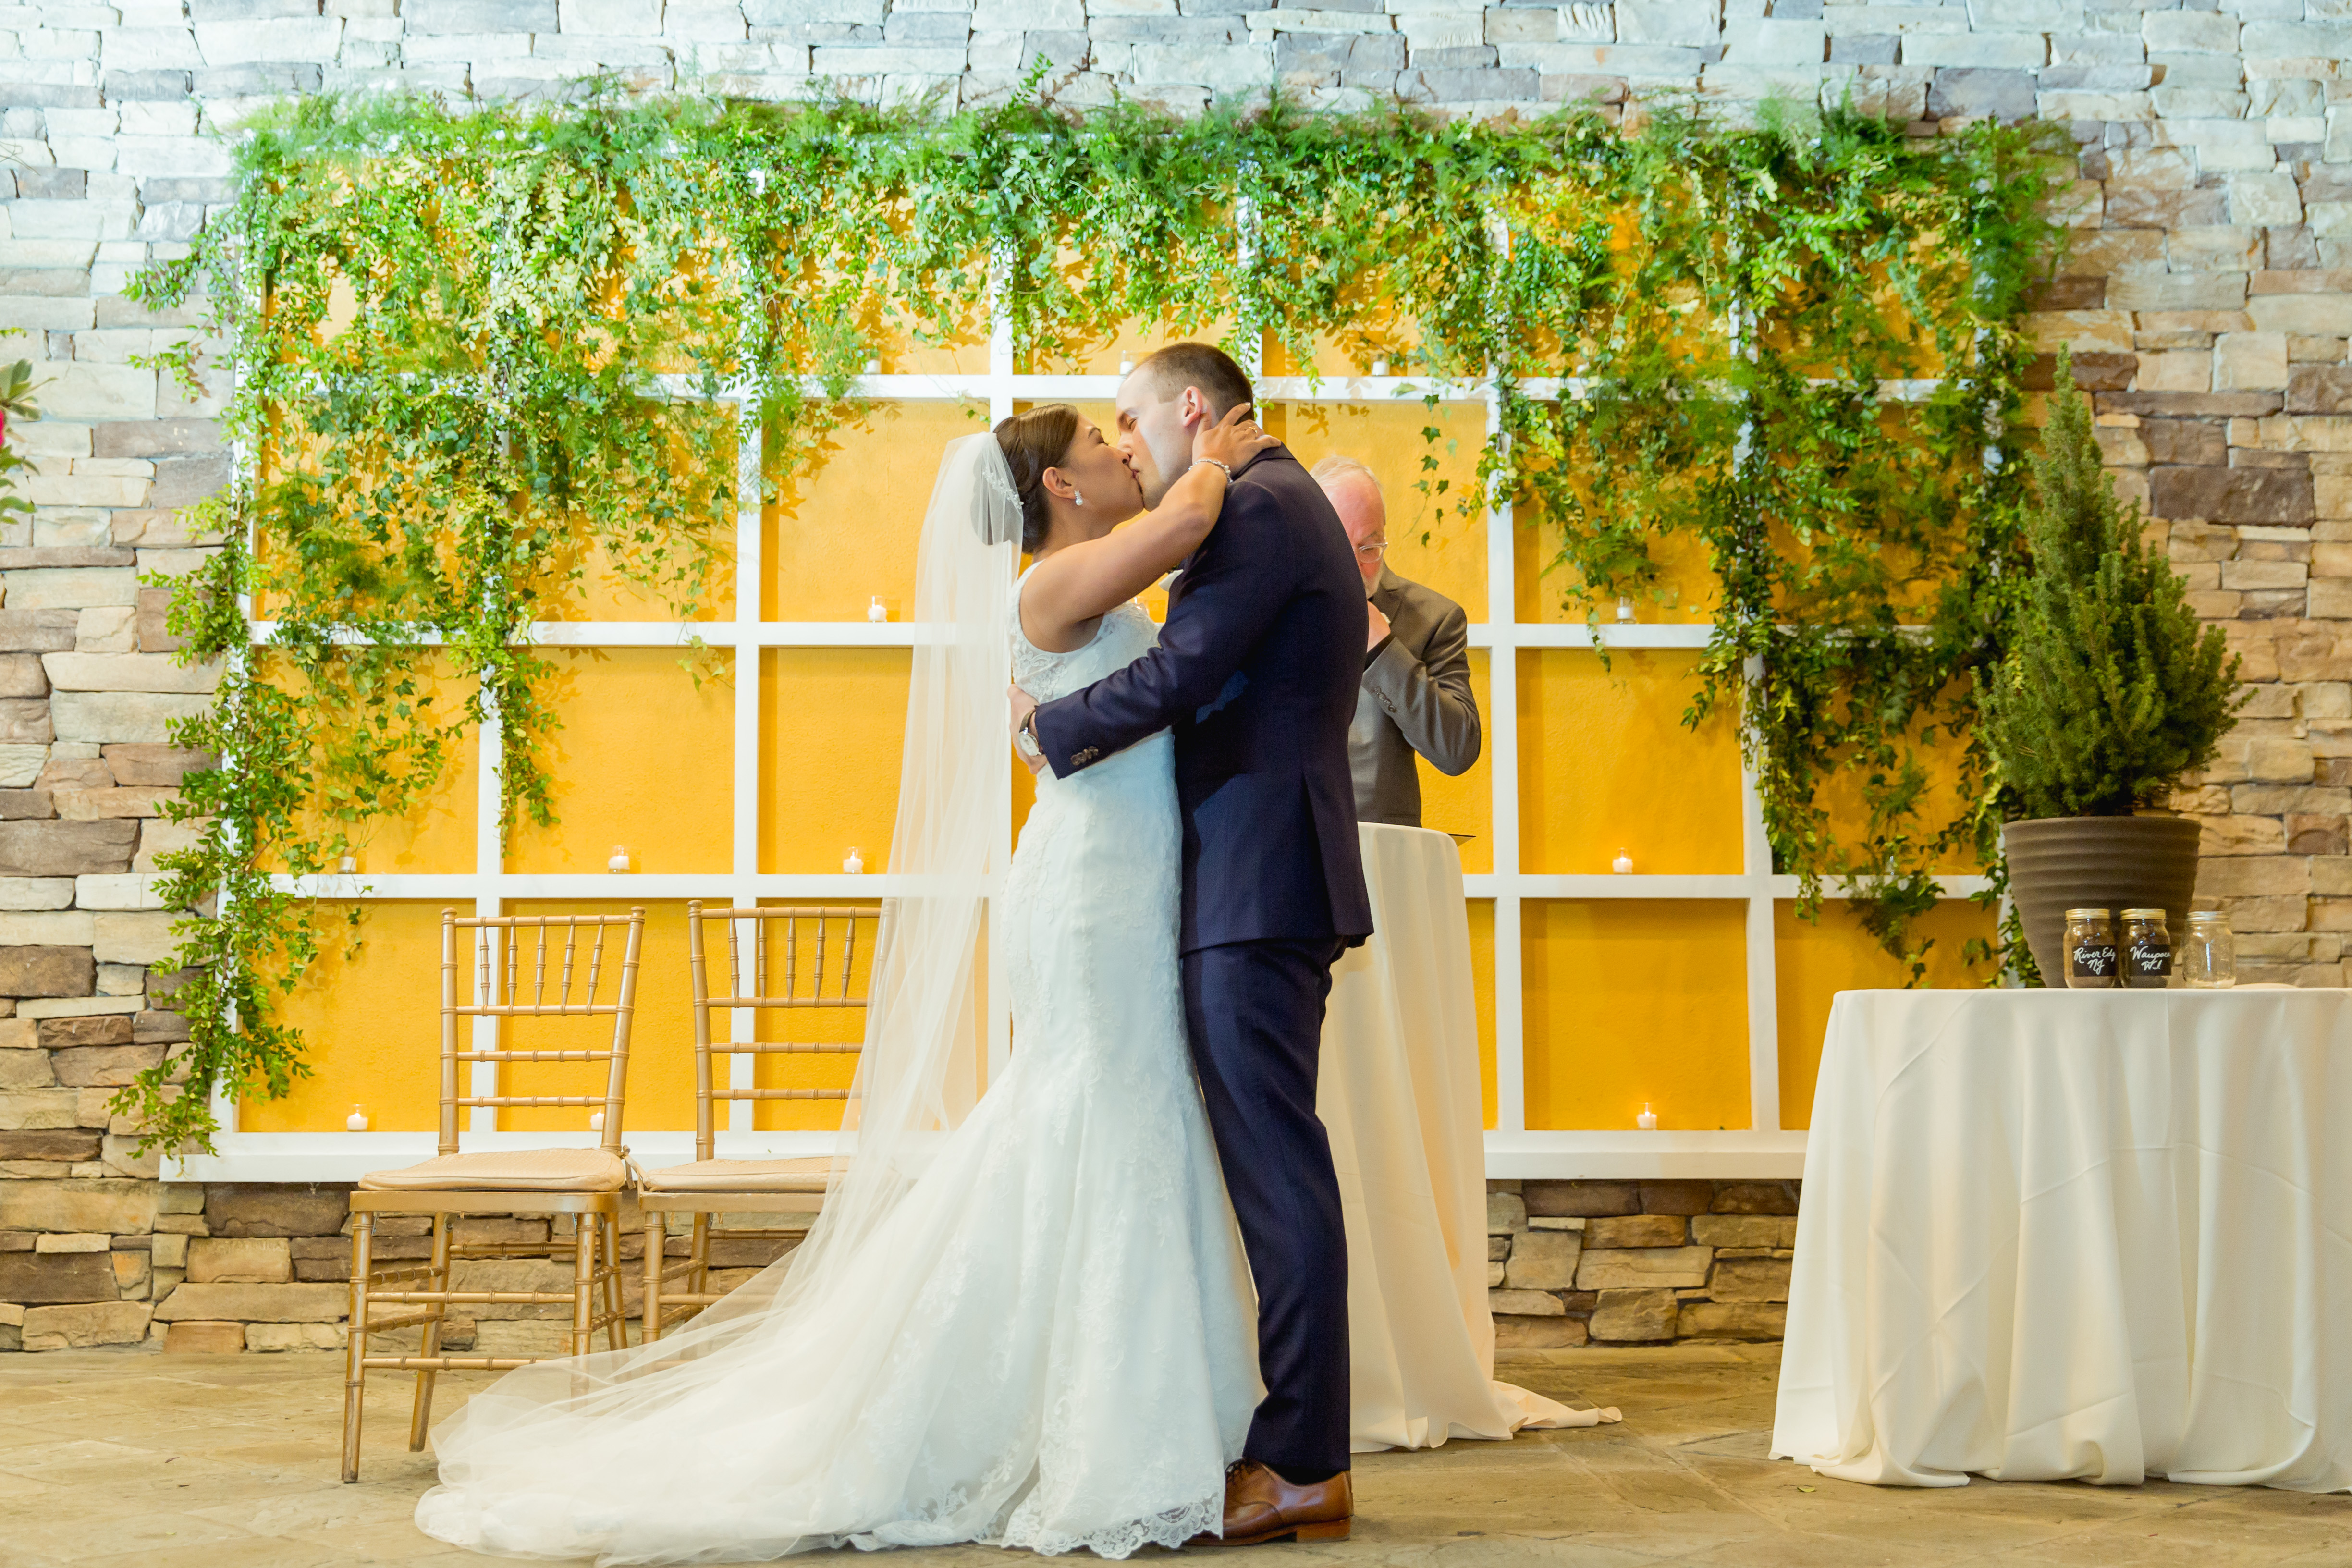 Gorgeous greenery backdrop inspiration for a wedding ceremony!